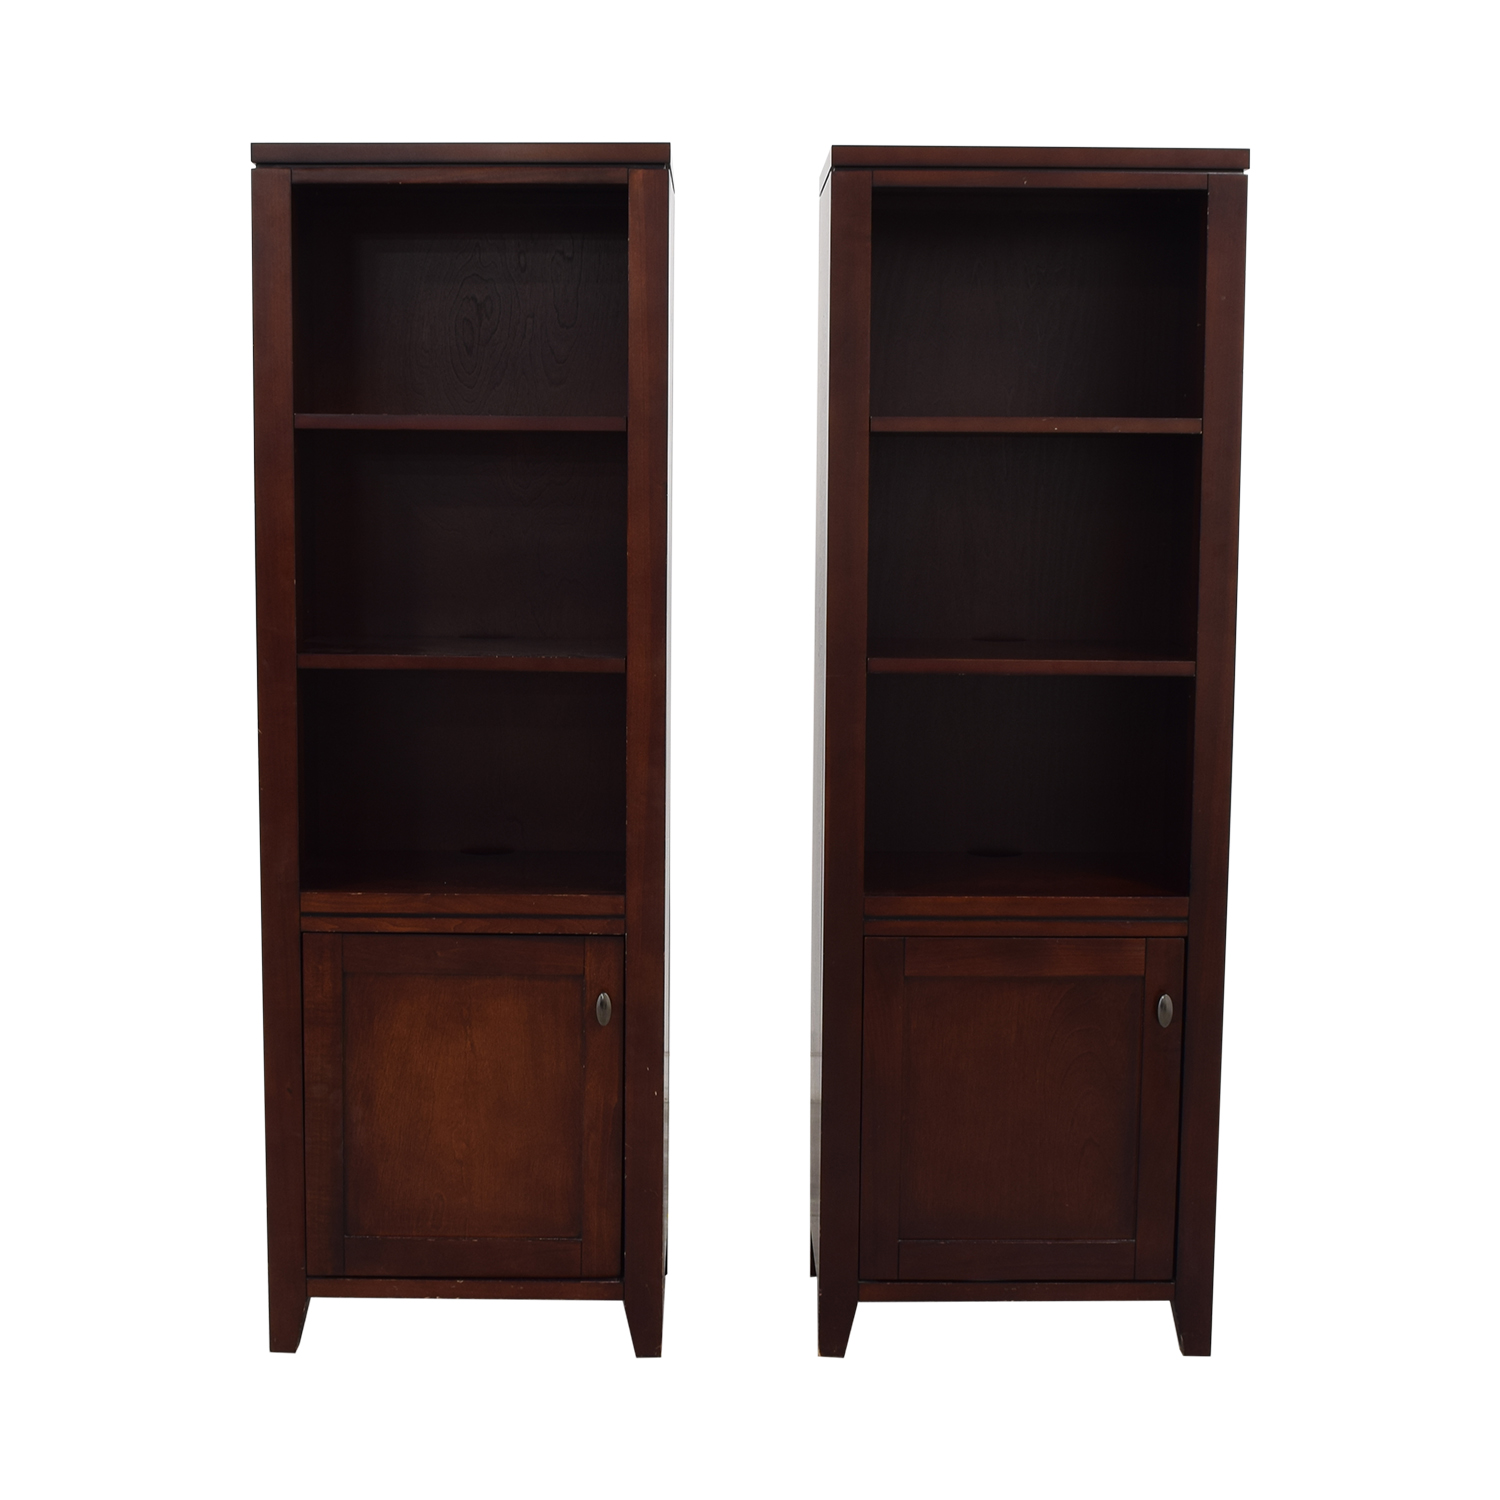 Crate & Barrel Crate & Barrel Twin Bookshelves Bookcases & Shelving